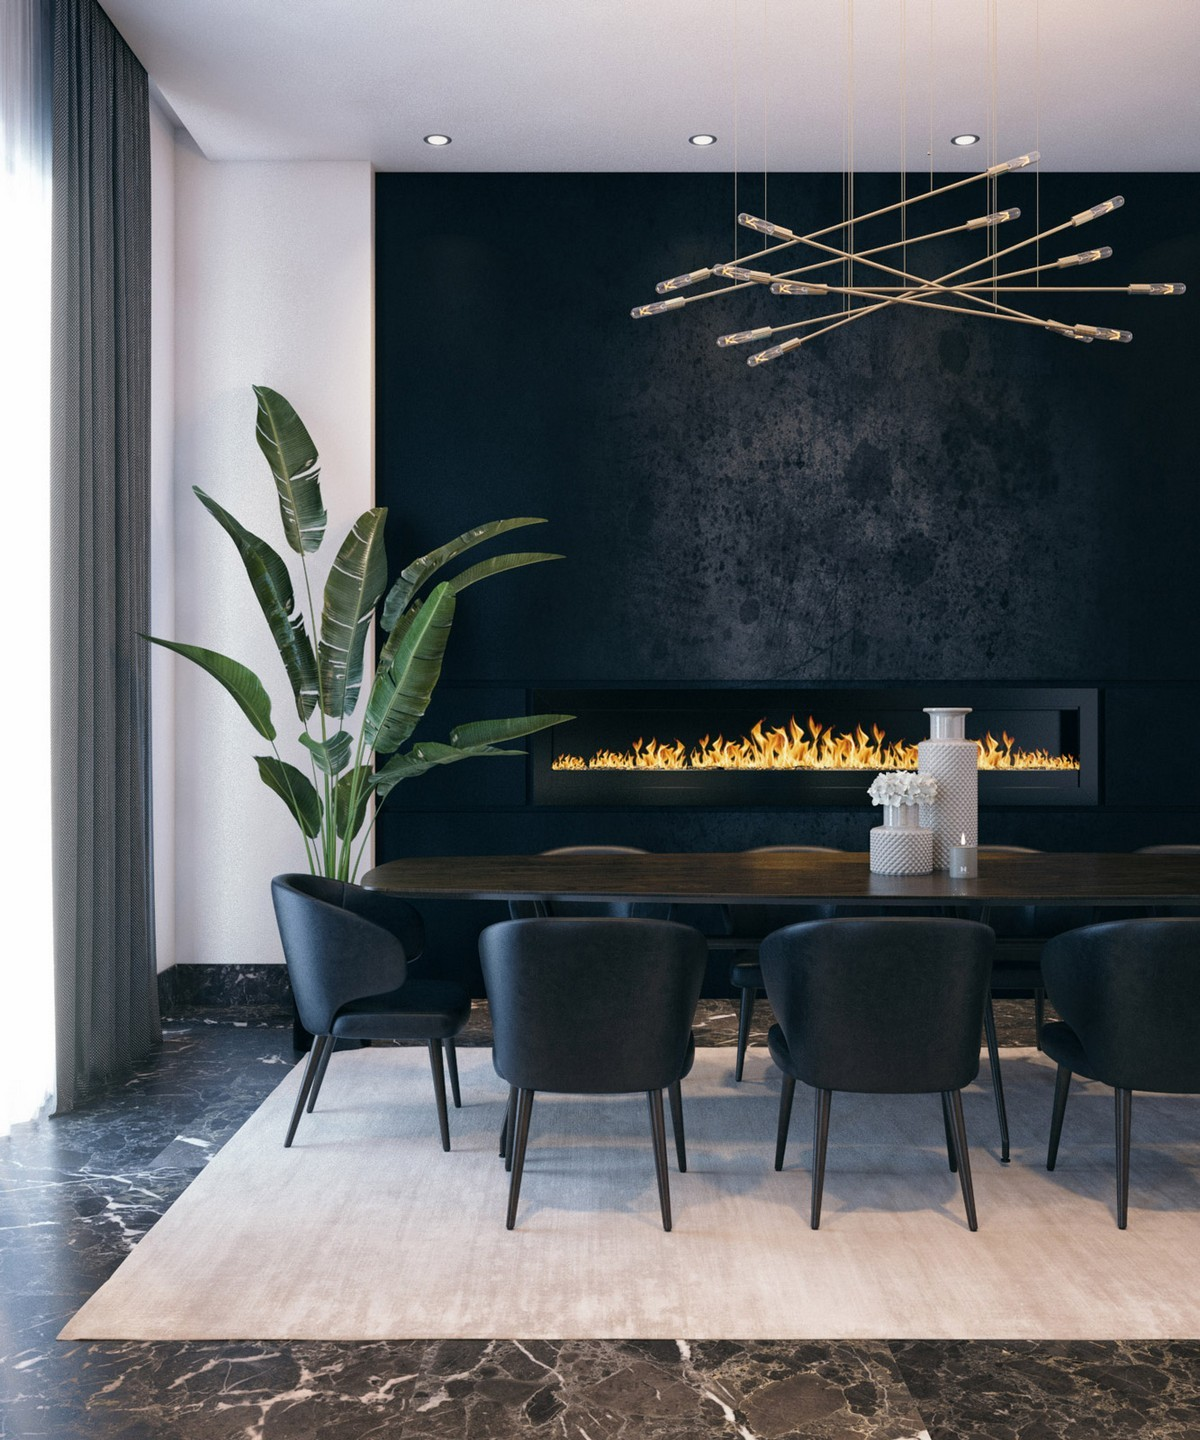 Modern Dining Room Inspirations To Look For in 2019 modern dining room Modern Dining Room Inspirations To Look For in 2019 1